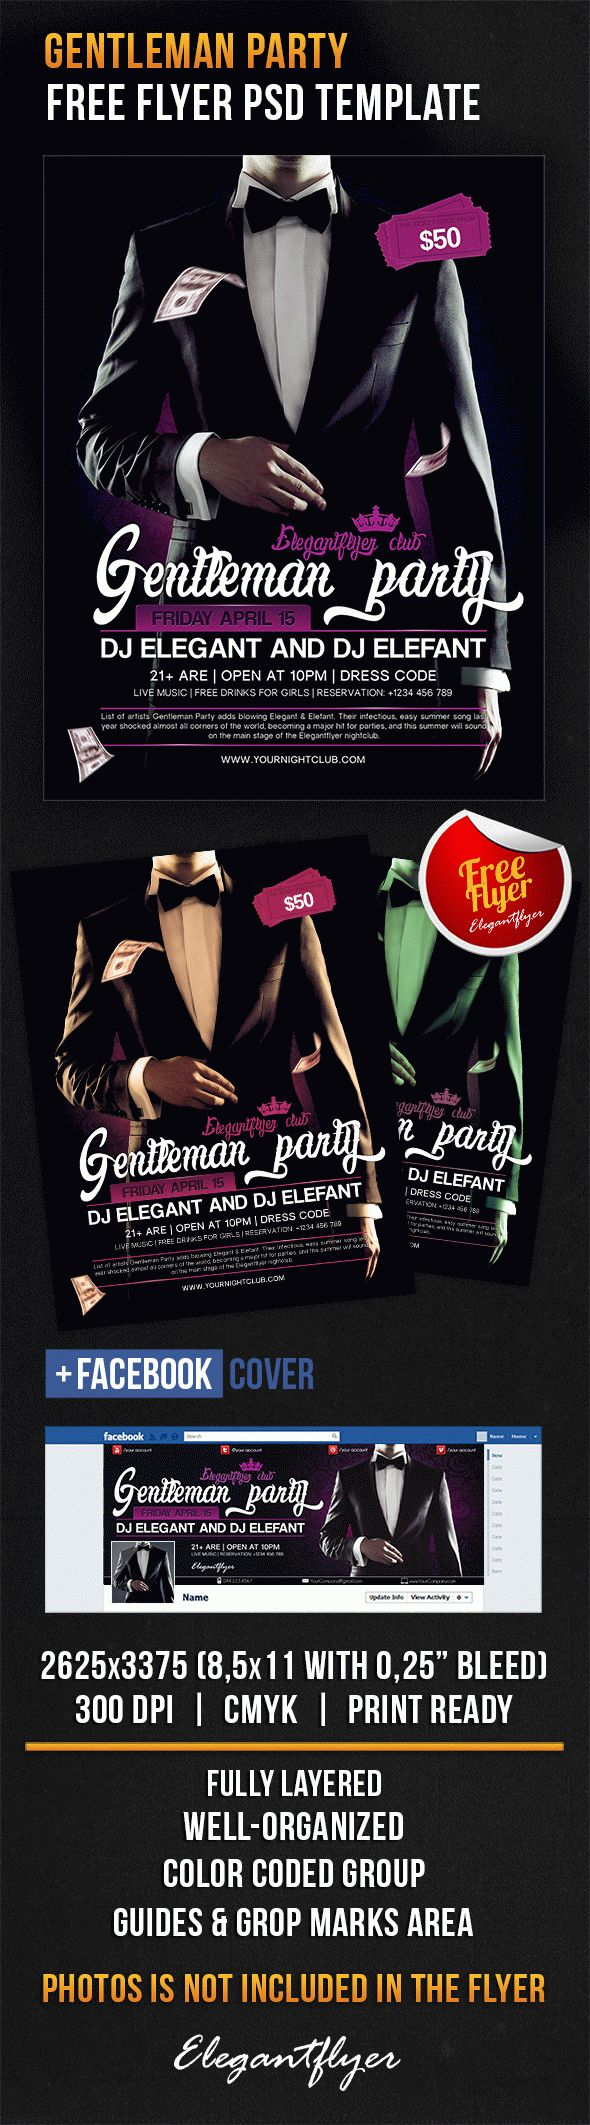 Gentleman Party – Free Flyer PSD Template